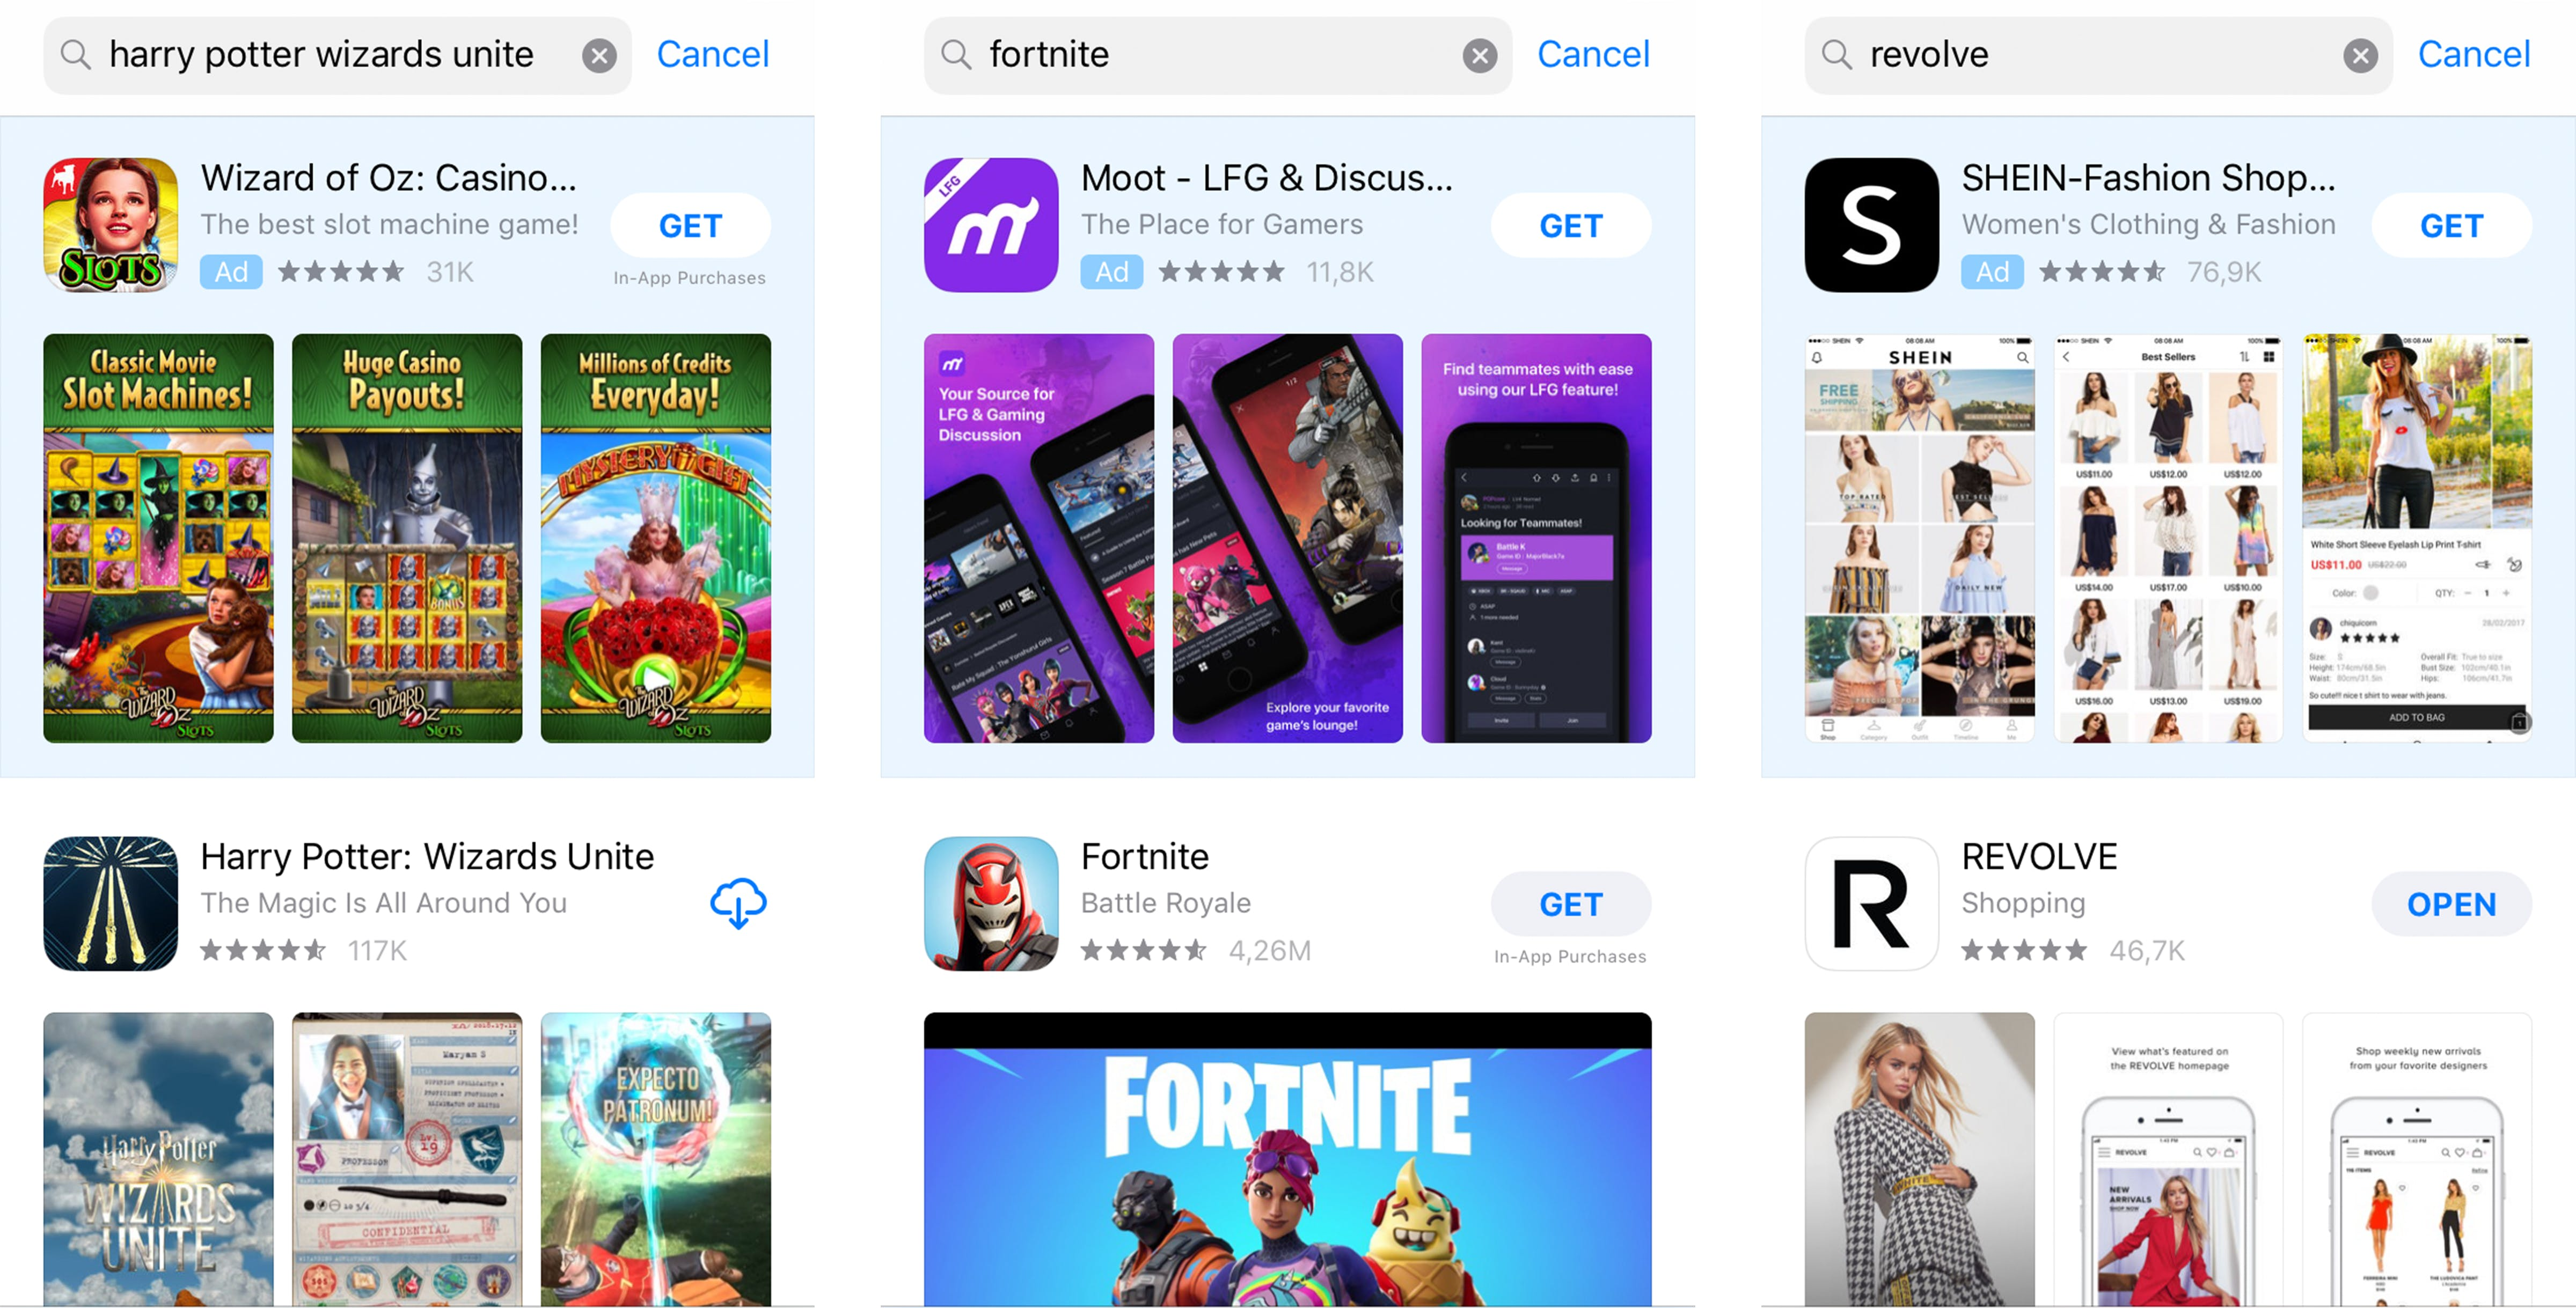 Apple Search Ads will choose 3 of your existing screenshots to show in the ad